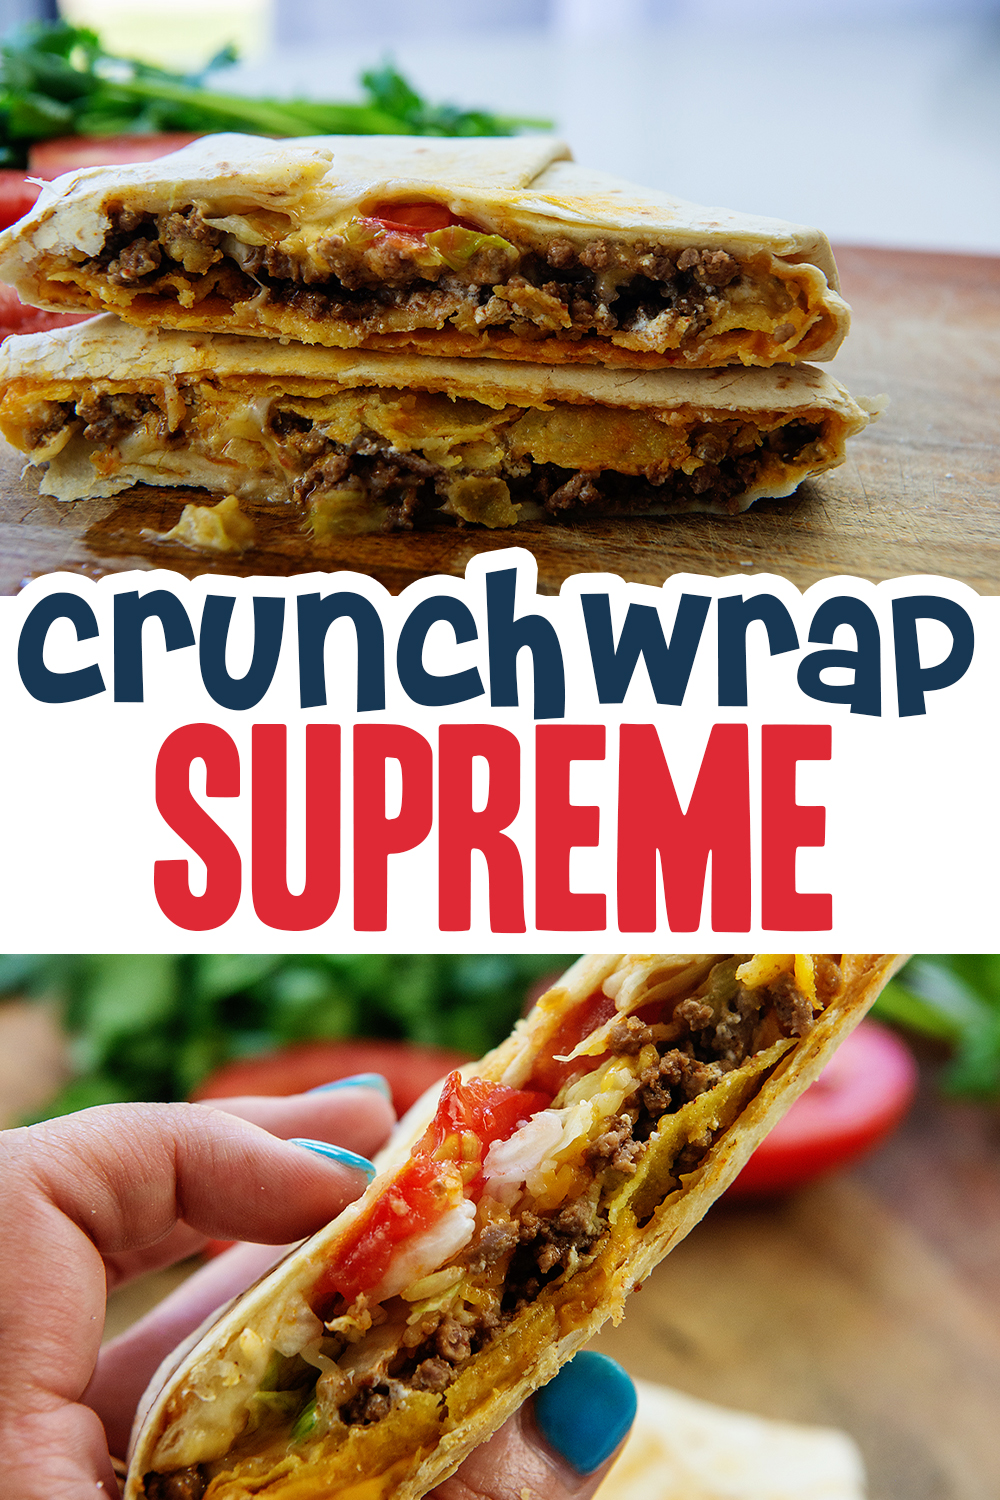 We love these air fried crunchwrap supremes!  They are a copy cat recipe from Taco Bell, but totally customizable as they are homemade!